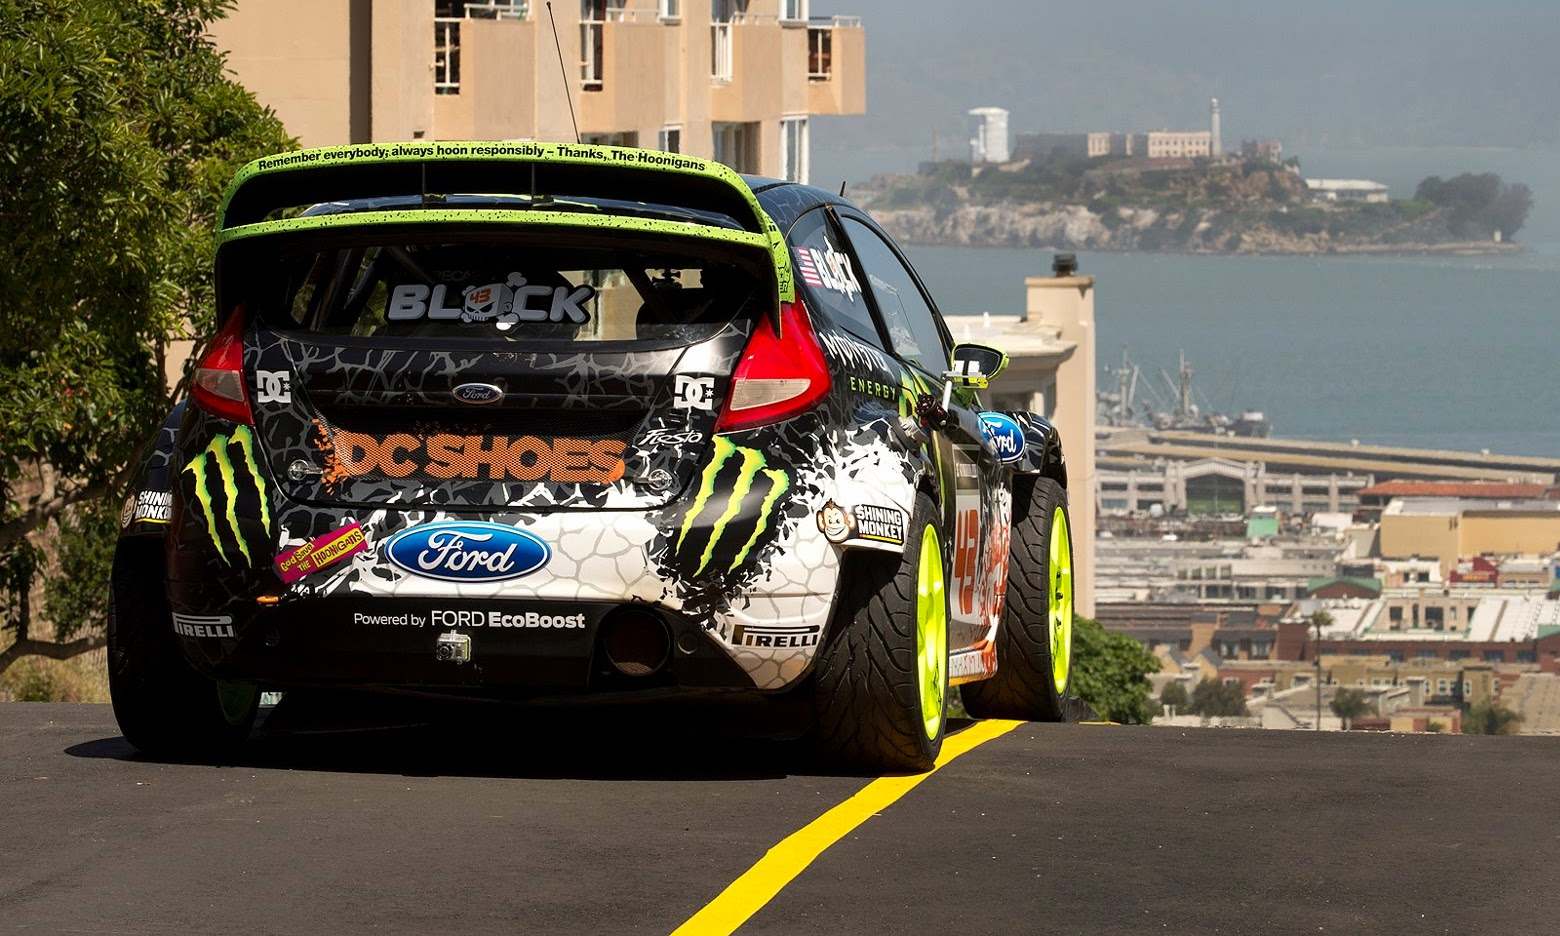 2014 Subaru Impreza WRX Ken Block Review   Subaru Is A Car That Is Very  Well Known Products In The World Of Racing. One Is A Rally And Drift.